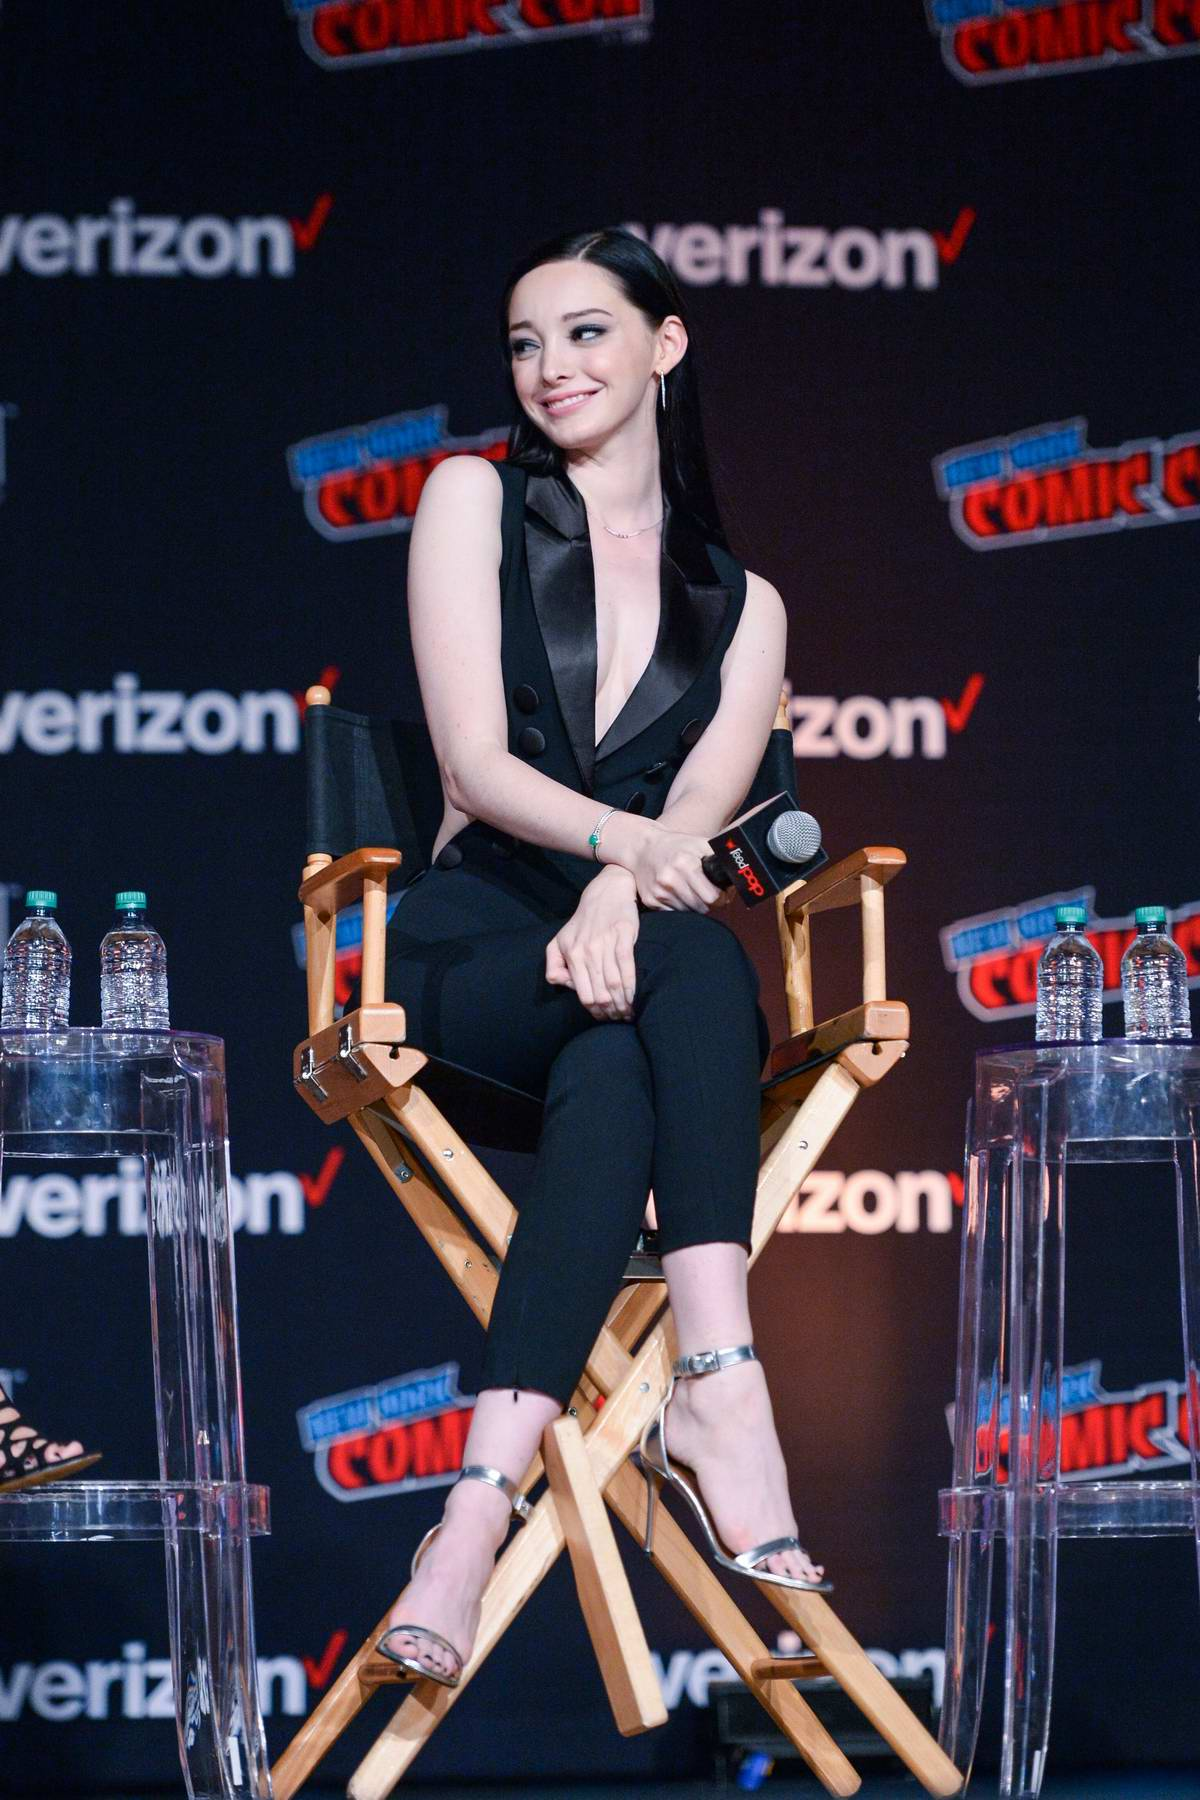 Emma Dumont attends 'The Gifted' panel during New York Comic Con 2018 (NYCC 2018) in New York City